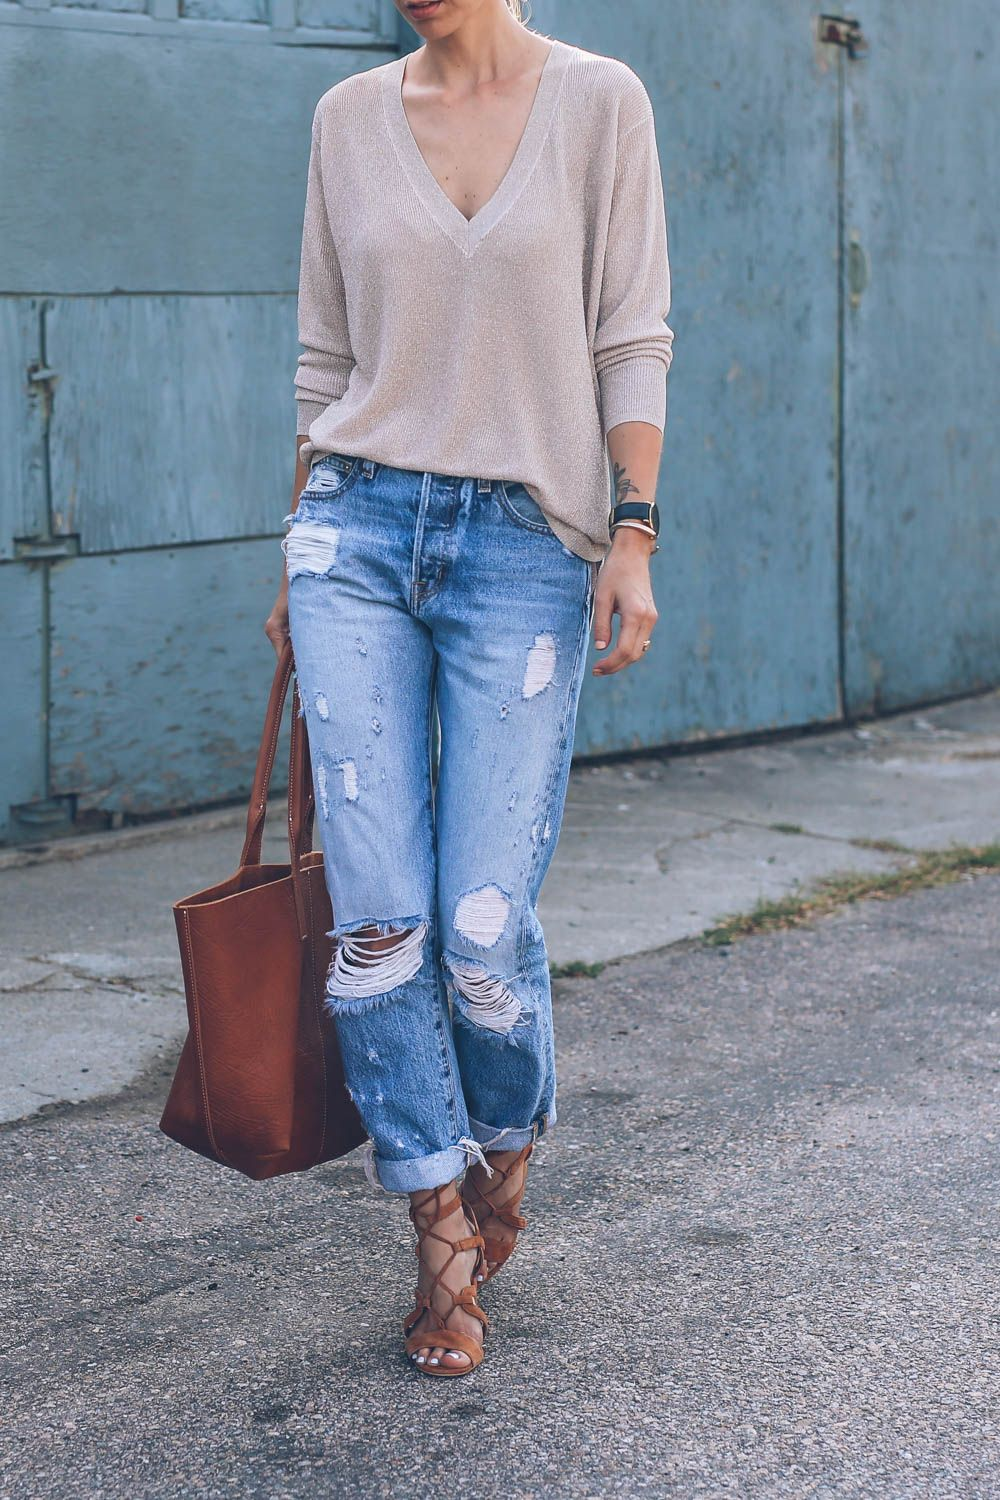 840dd0f5f2bc Laid Back Luxe: Ripped Jeans and Lace Up Heels | Boyfriend Jeans ...